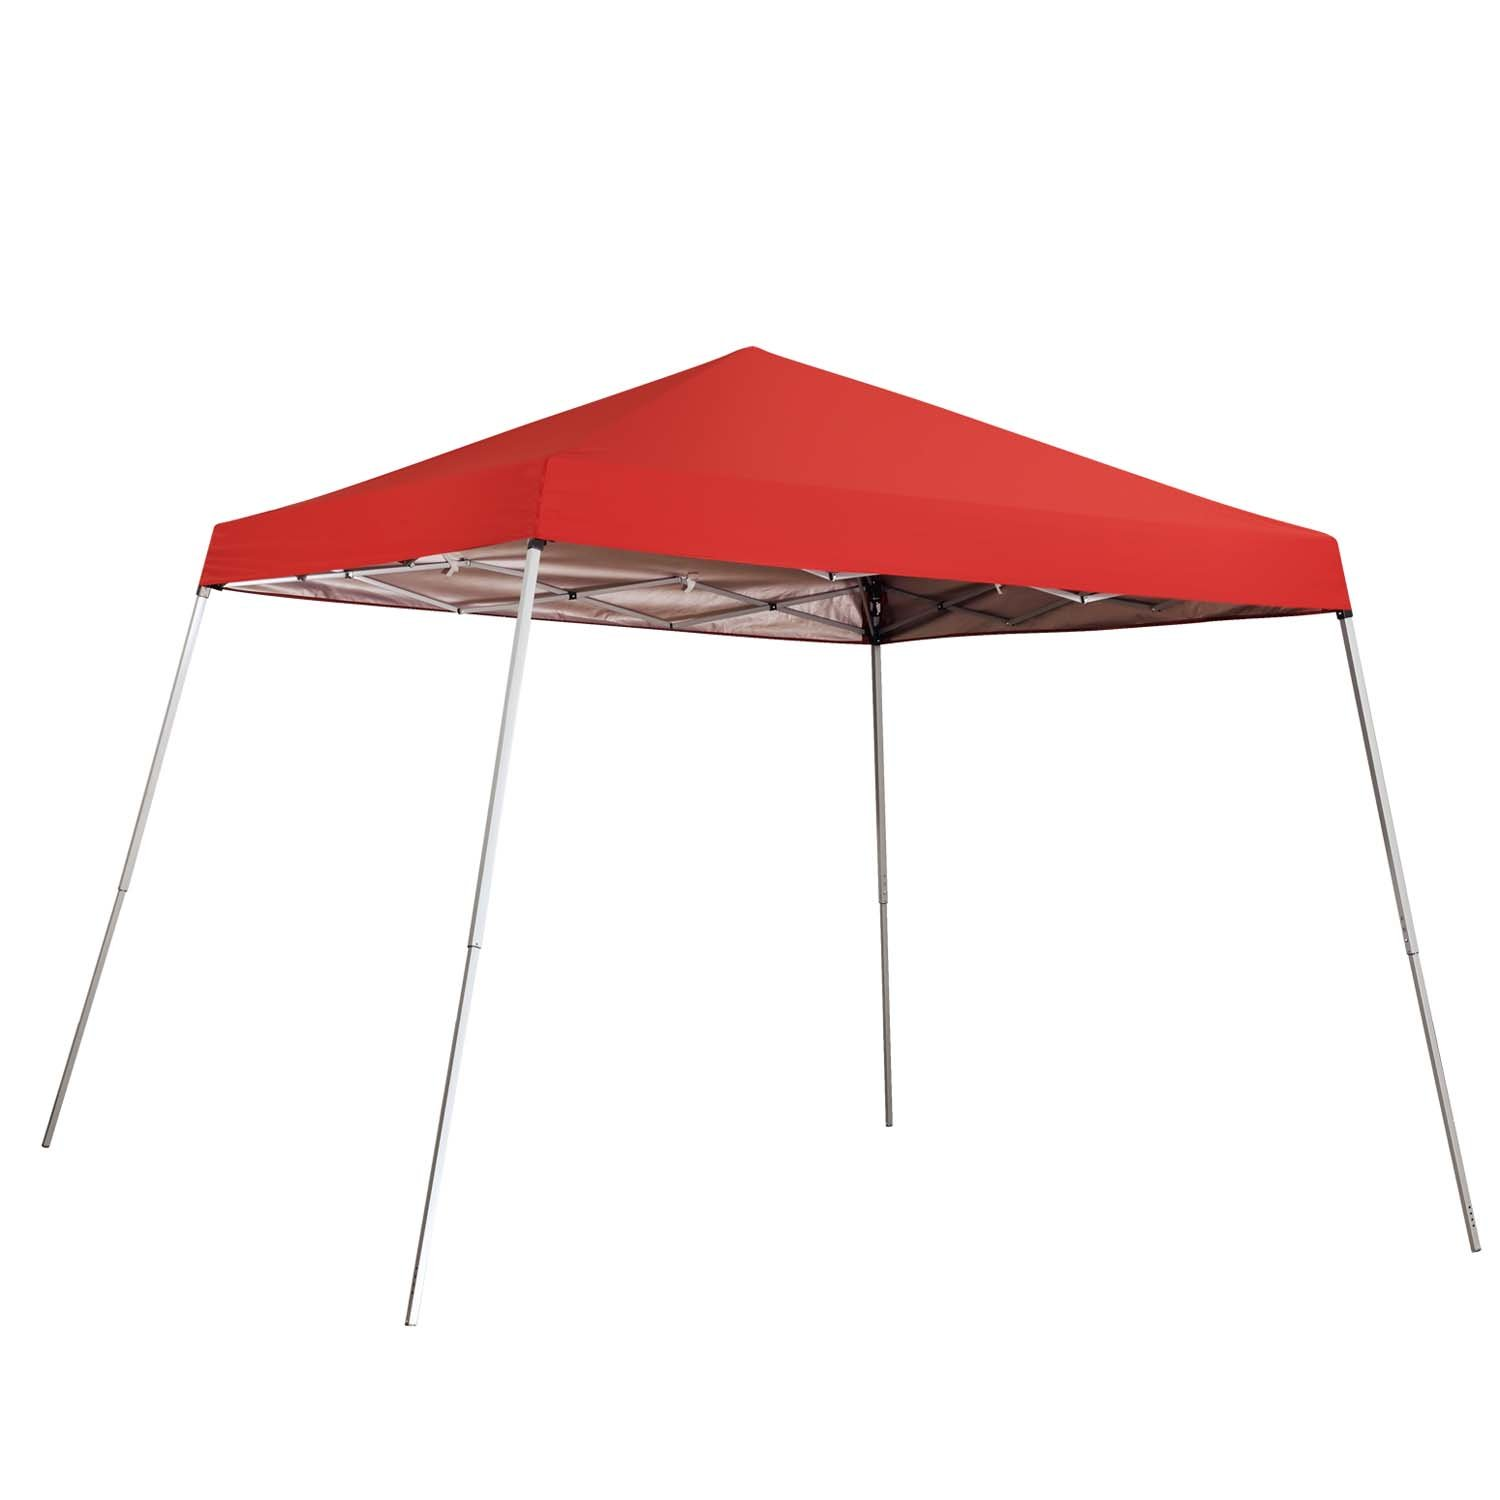 225 & Outdoor Basic 8 x 8 Ft Canopies 10x 10 Ft Base Slant Legs Pop up Canopy Tent for Camping Party